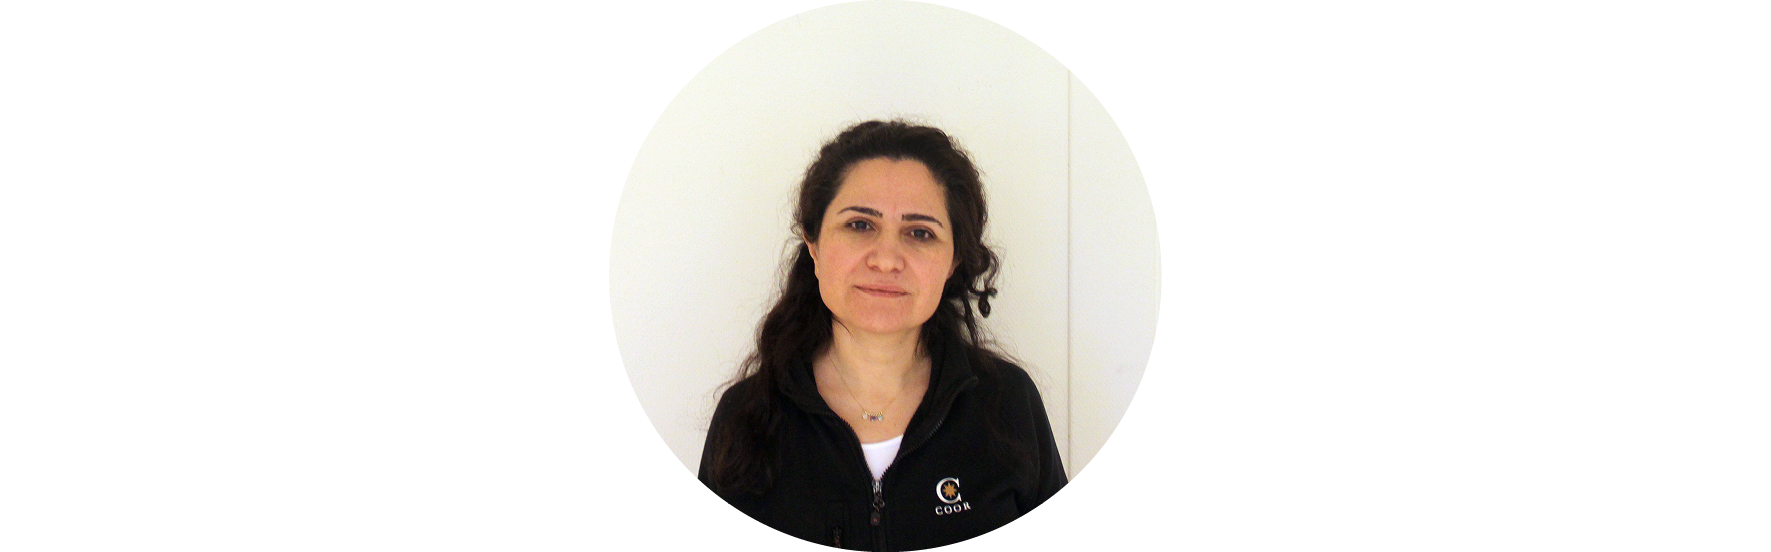 Pinar Sevgi | Operation Manager | Coor